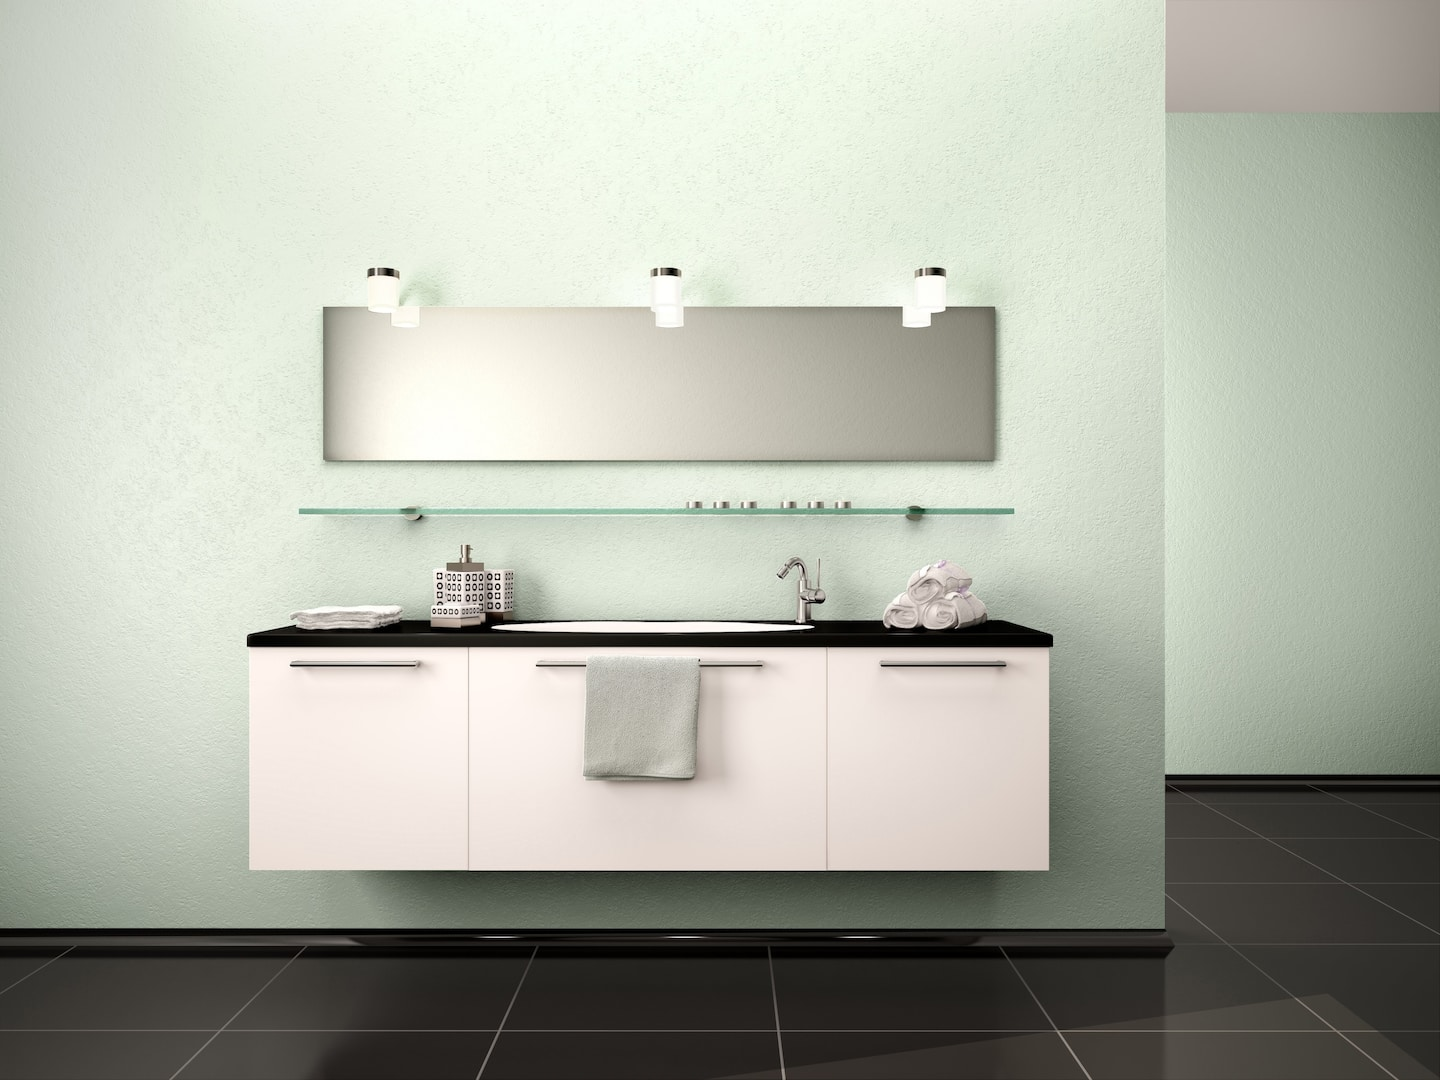 Bathroom Cabinet Design 27 floating sink cabinets and bathroom vanity ideas 3d Illustration Of Washbasin In A Modern Interior Bathroom Style Of Minimalism